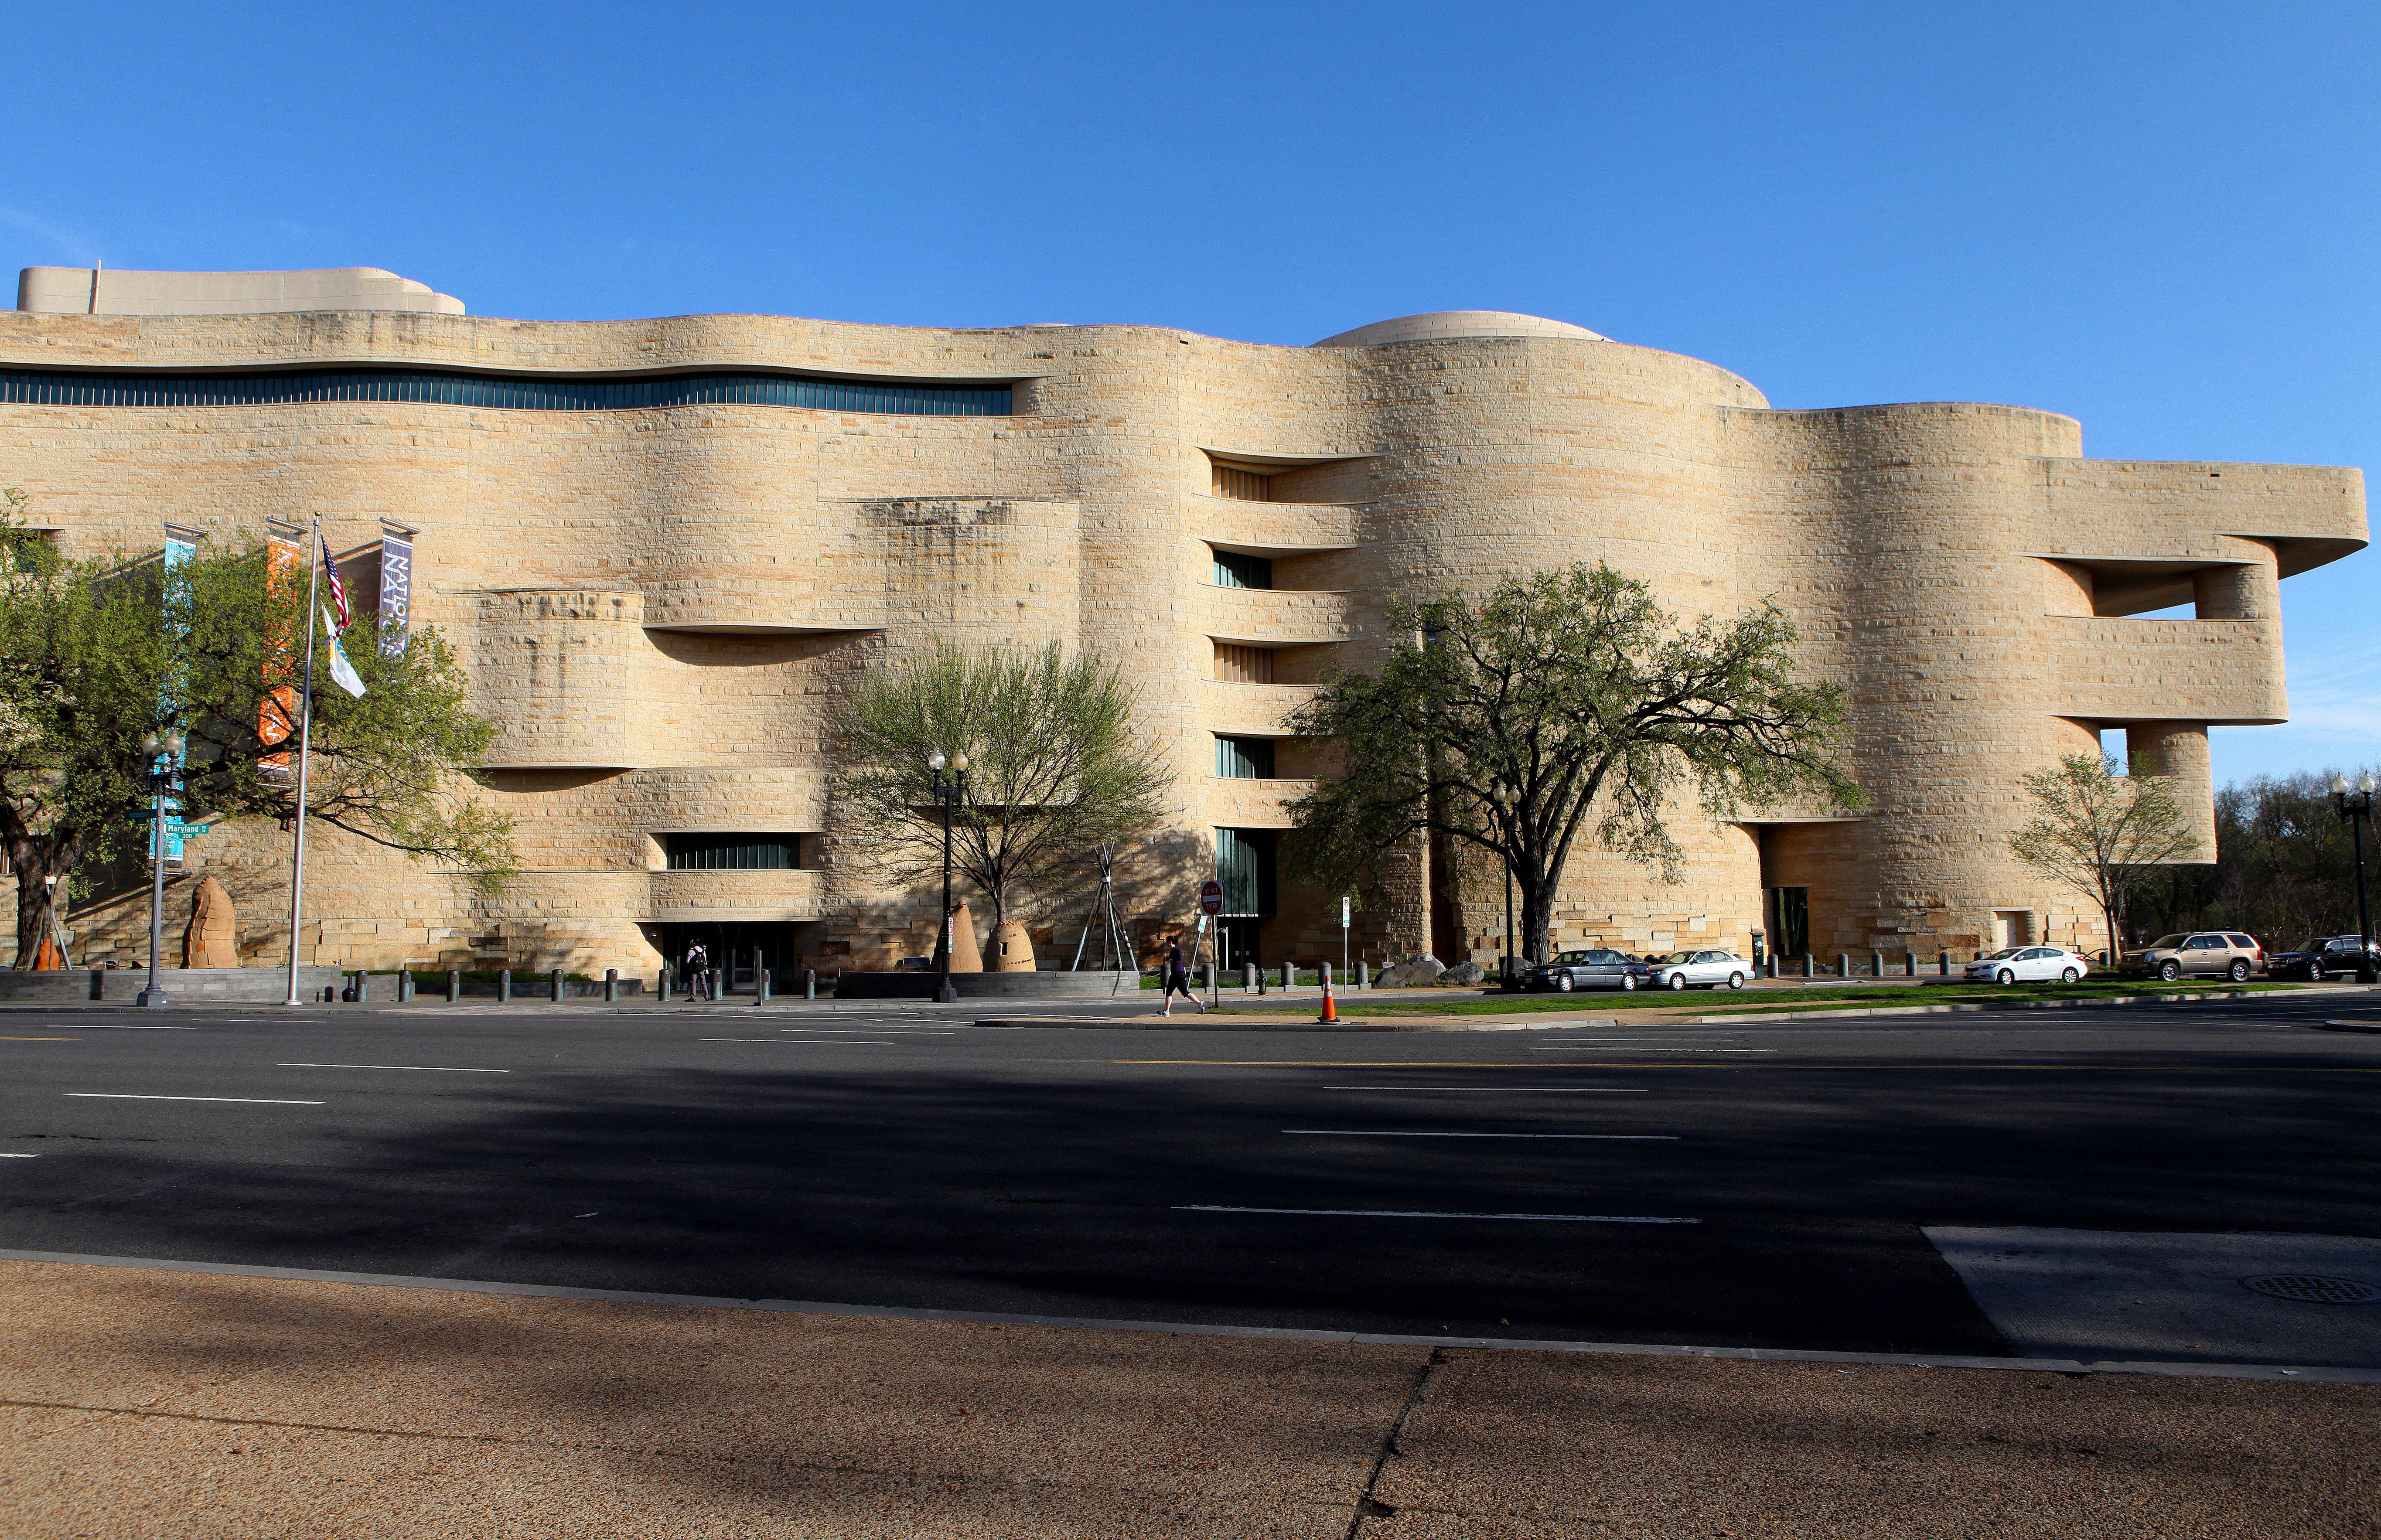 Exterior of the National Museum of the American Indian